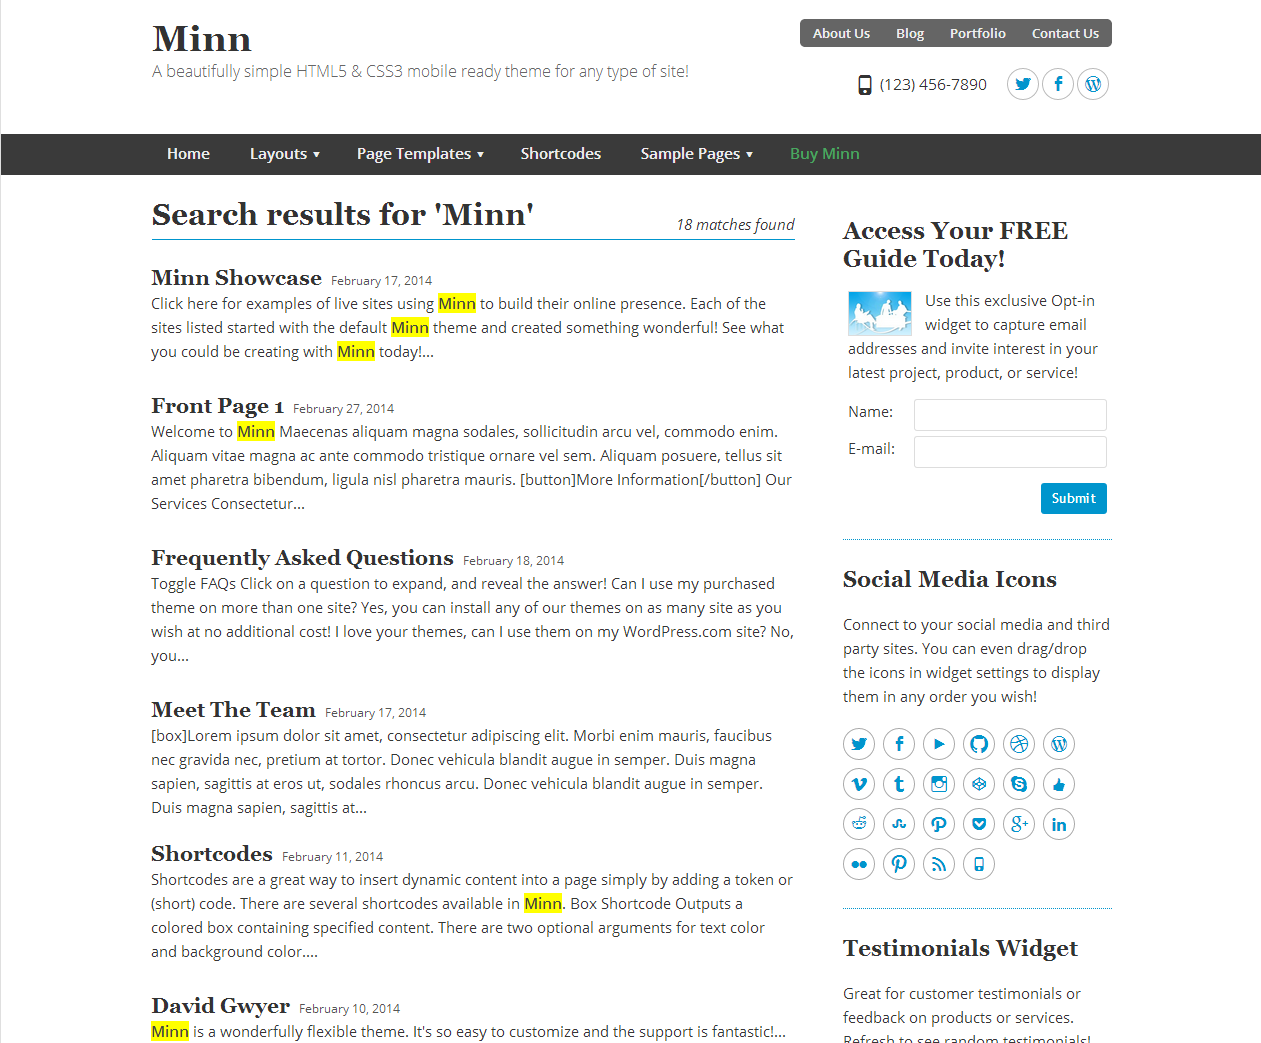 minn-search-results-page